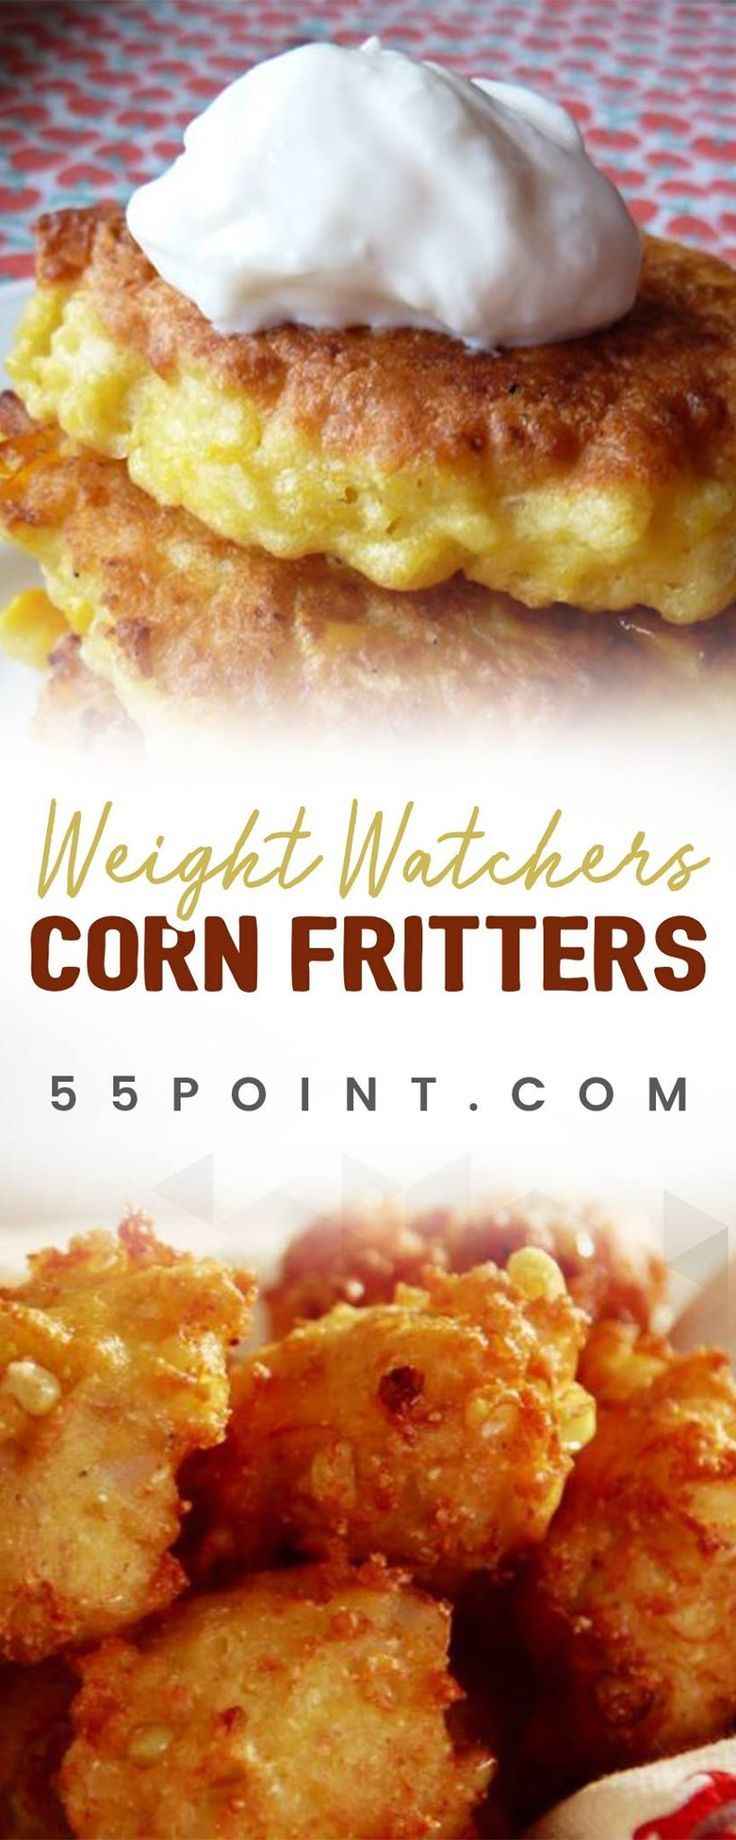 Weight watchers corn fritters #recipes